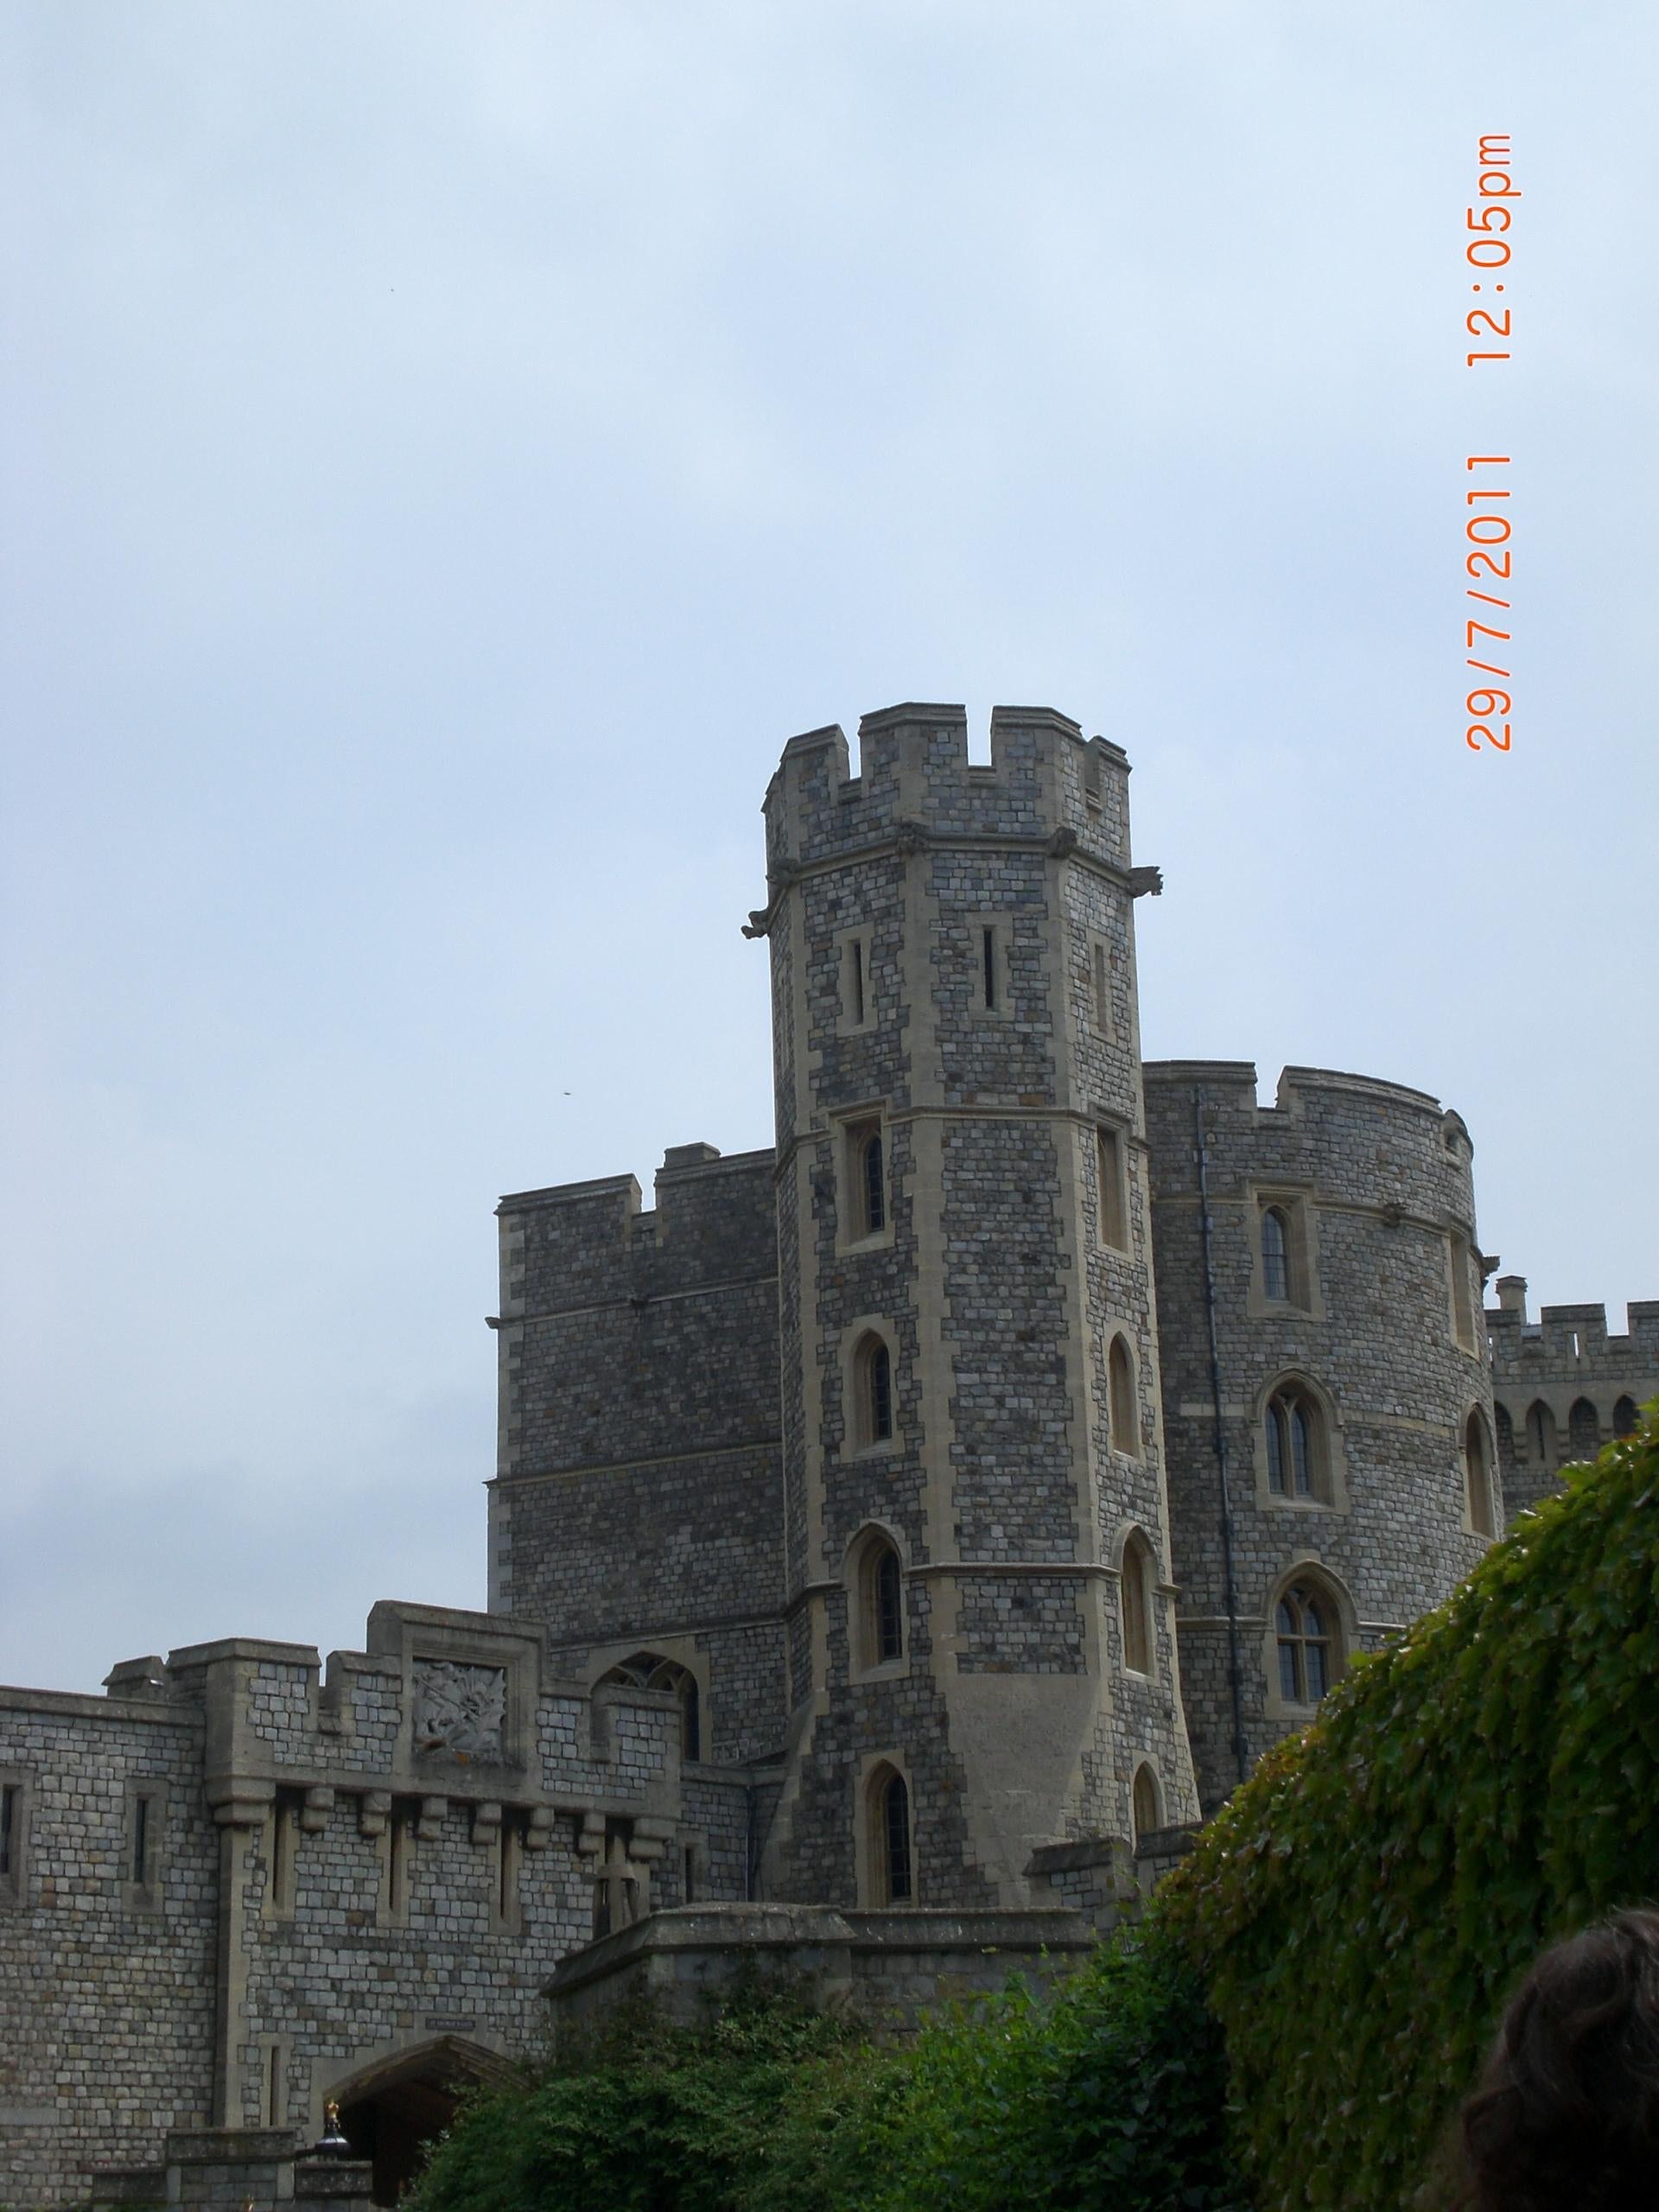 Mar en Castillo de Windsor